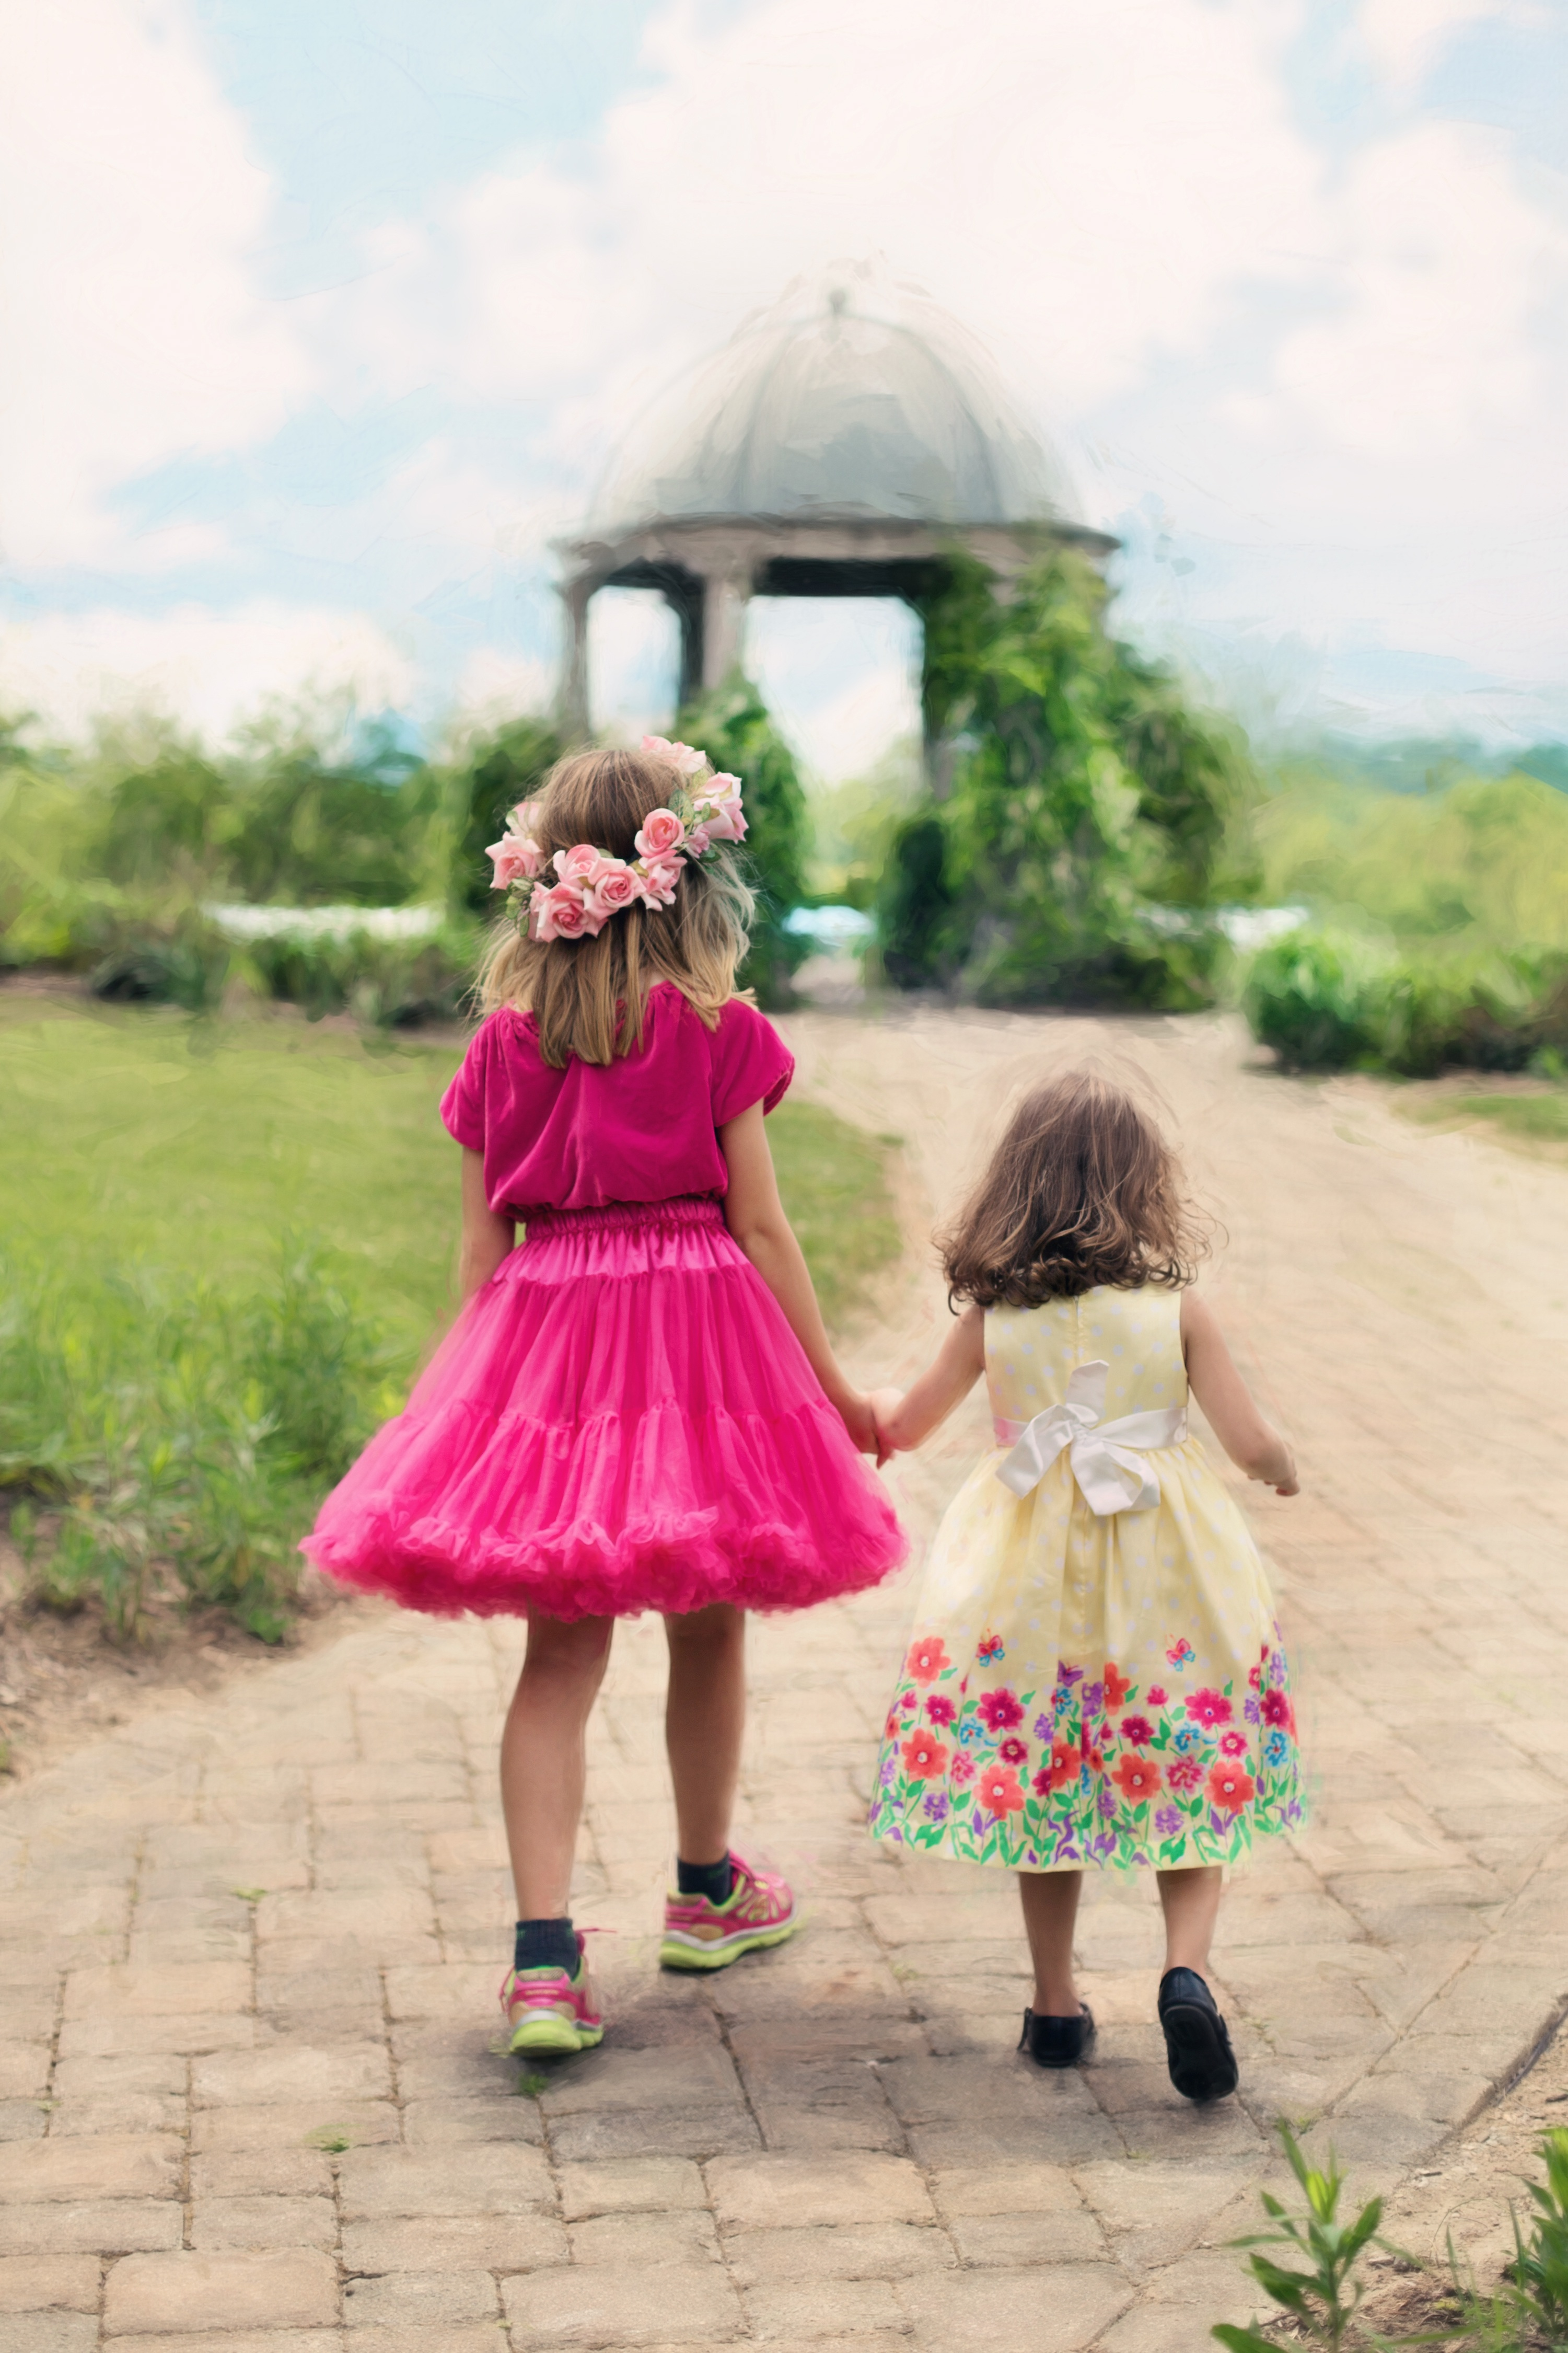 little-girls-walking-summer-outdoors-pretty.jpg (3001×4502)